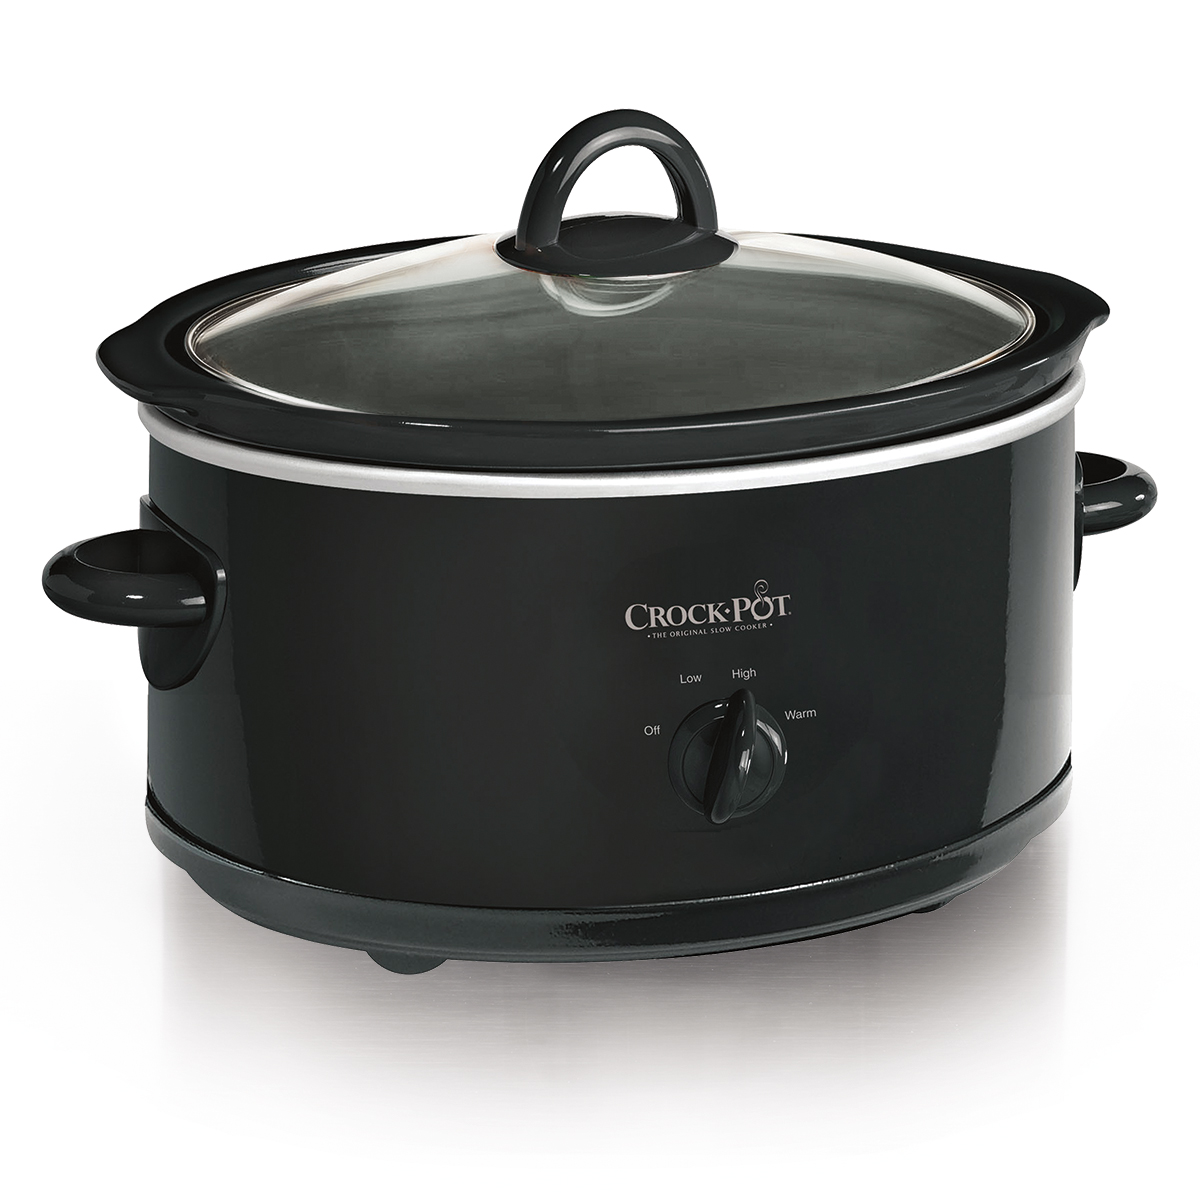 Crock-Pot Manual Slow Cooker, 7 Quart, Black